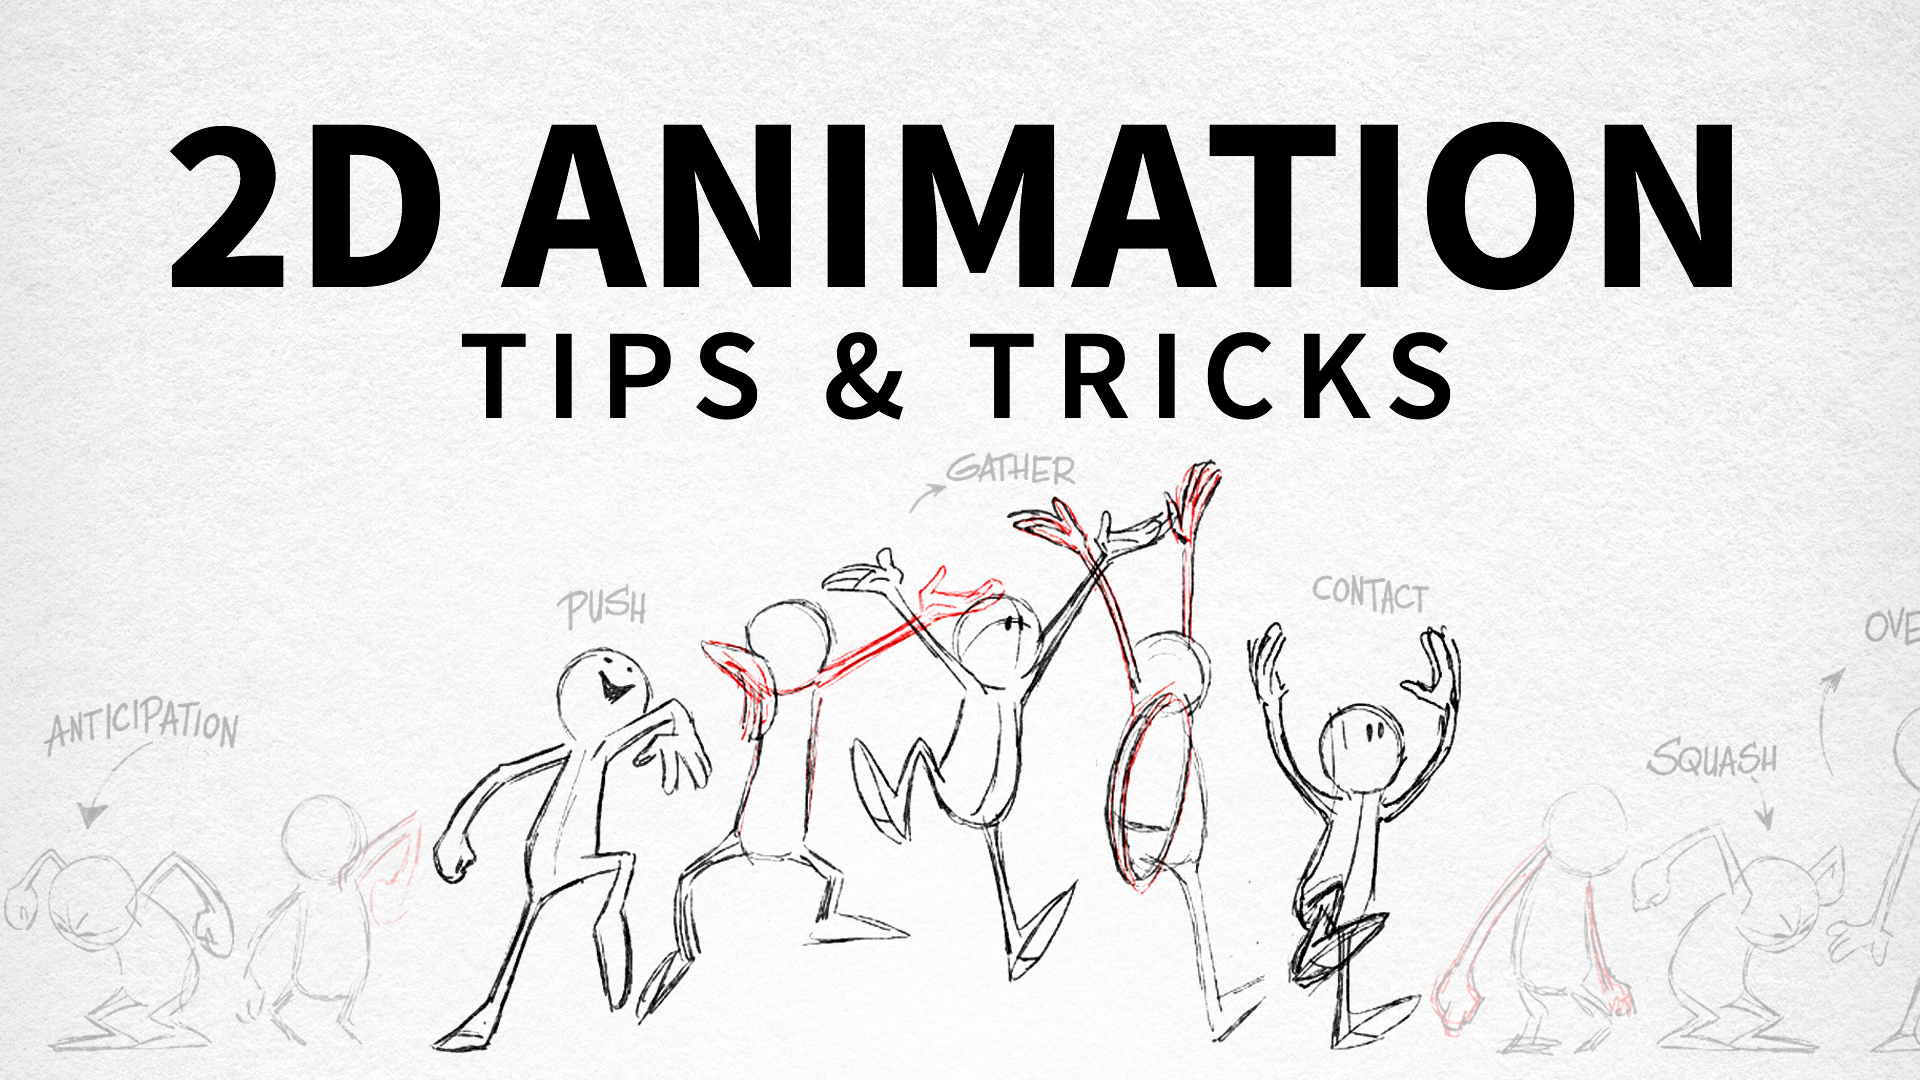 2d animation tips and tricks